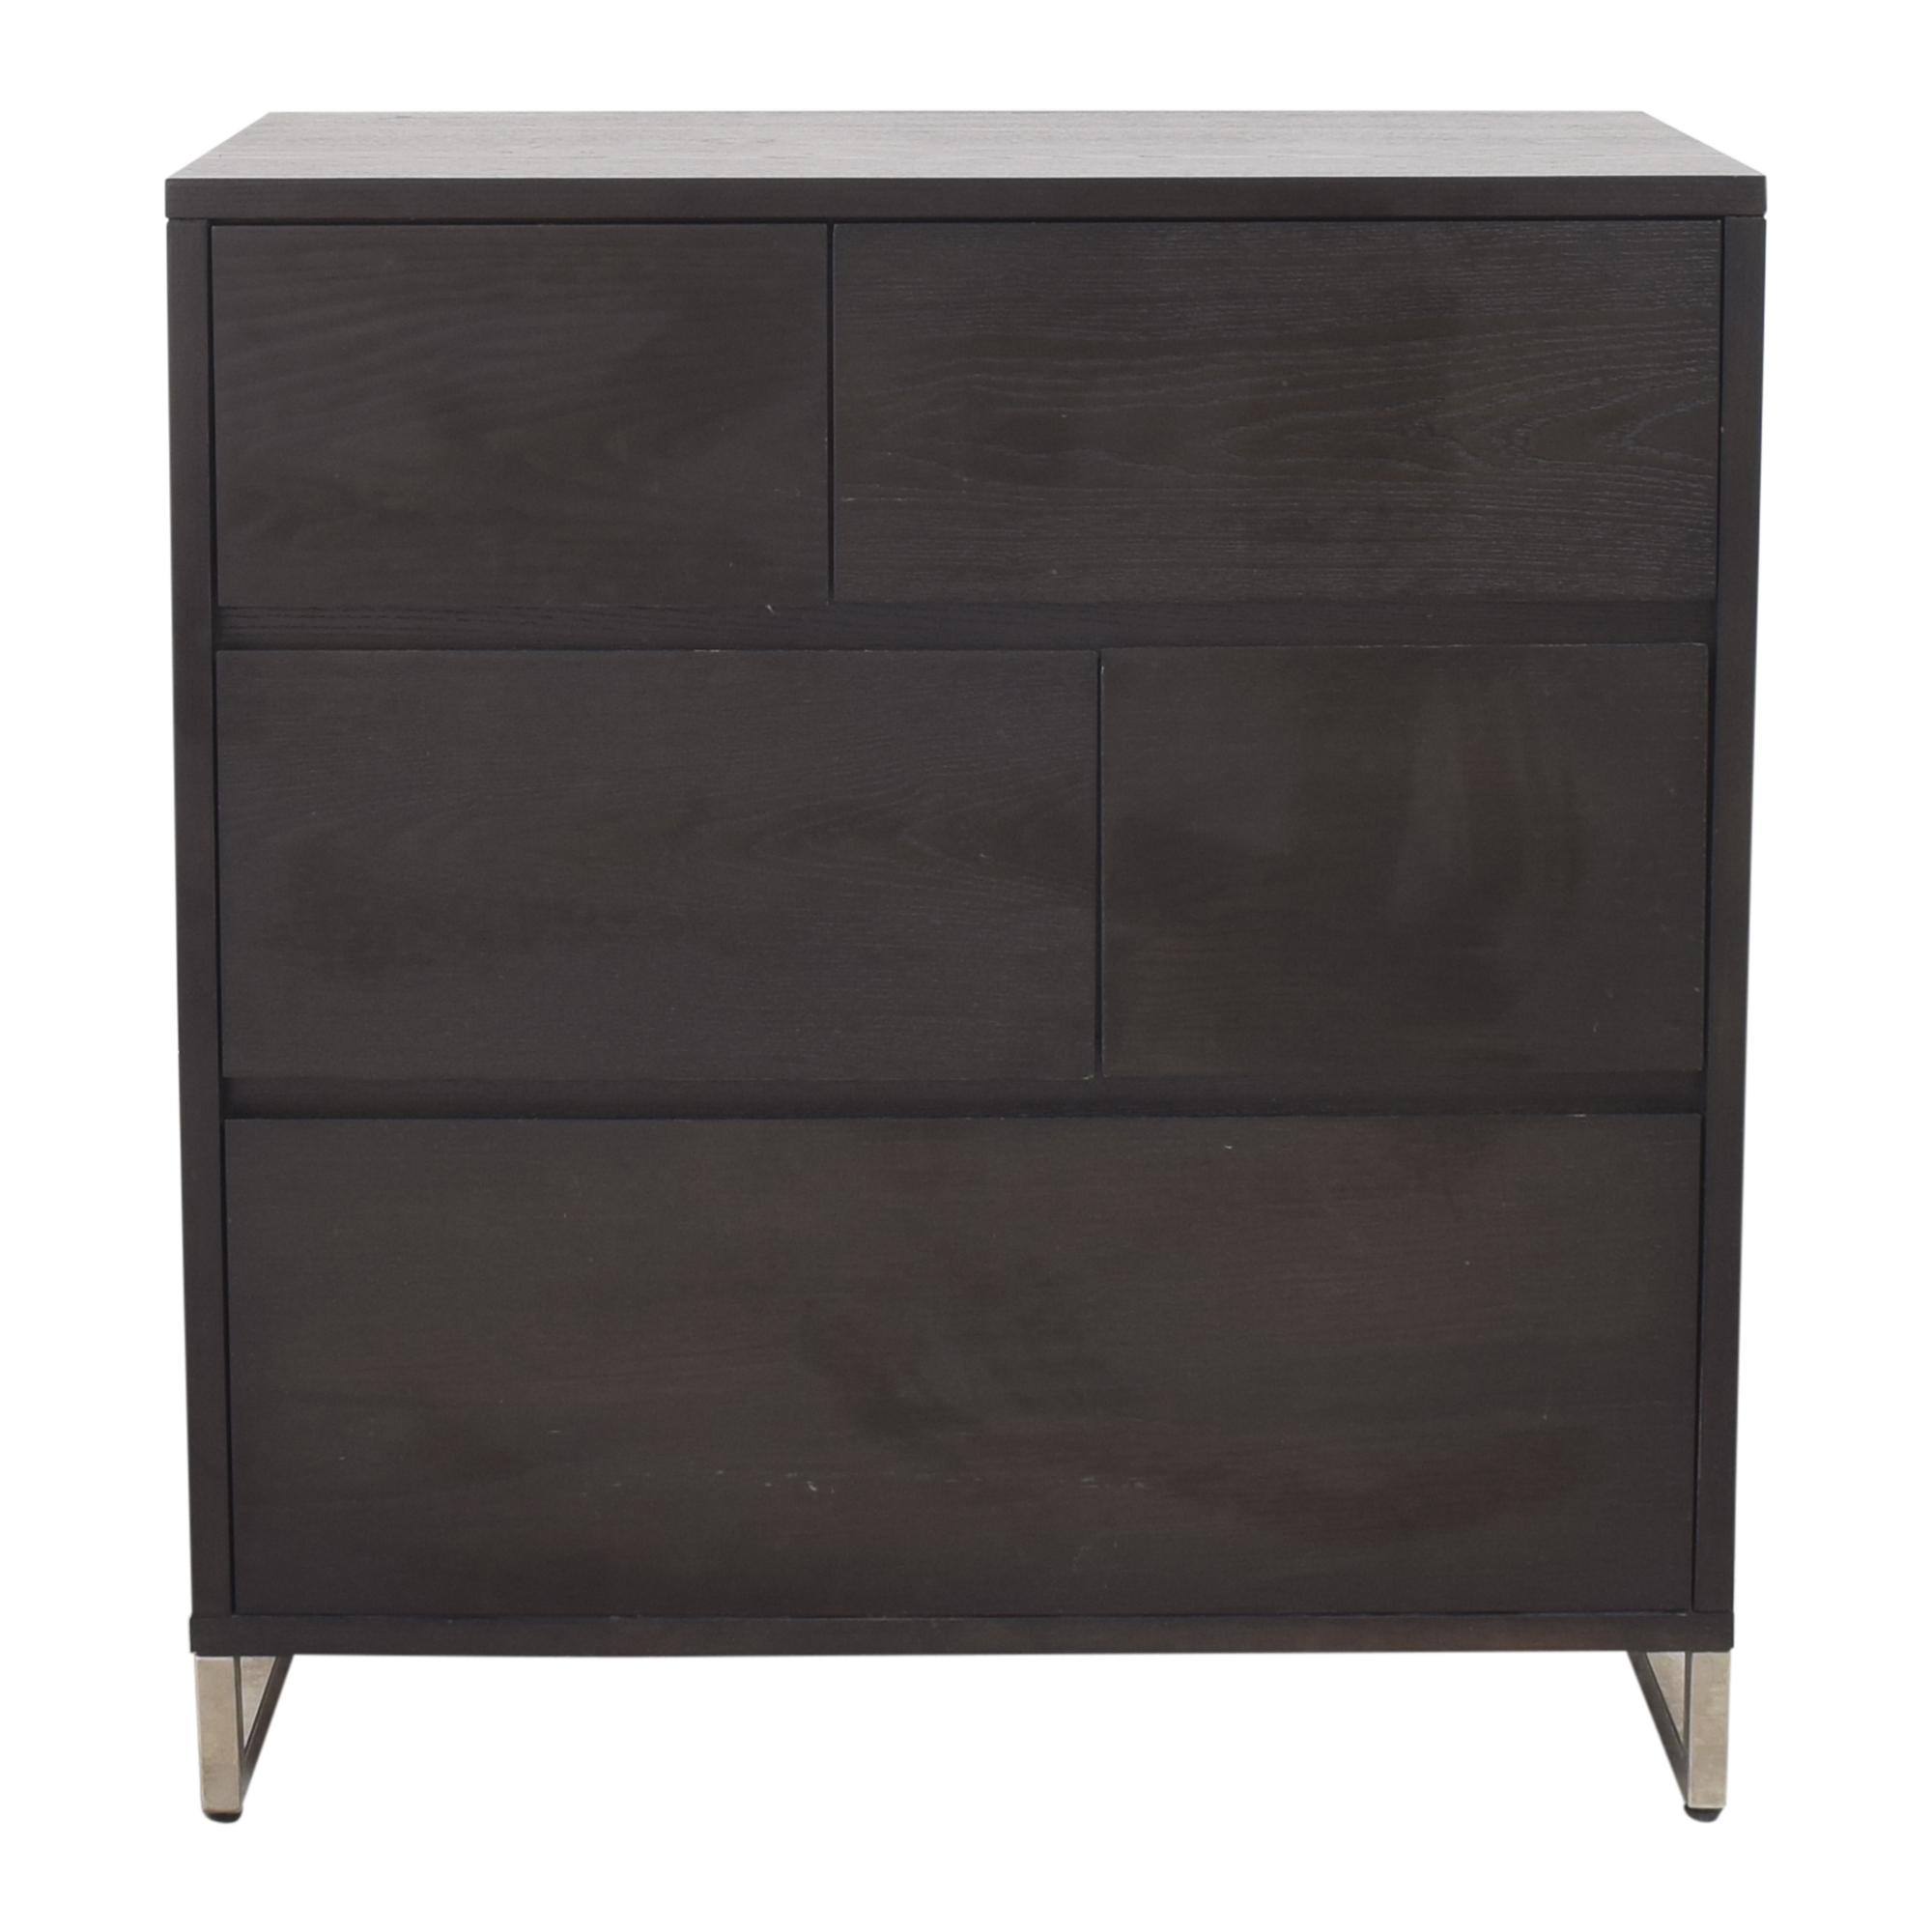 West Elm West Elm Hudson Five Drawer Dresser for sale